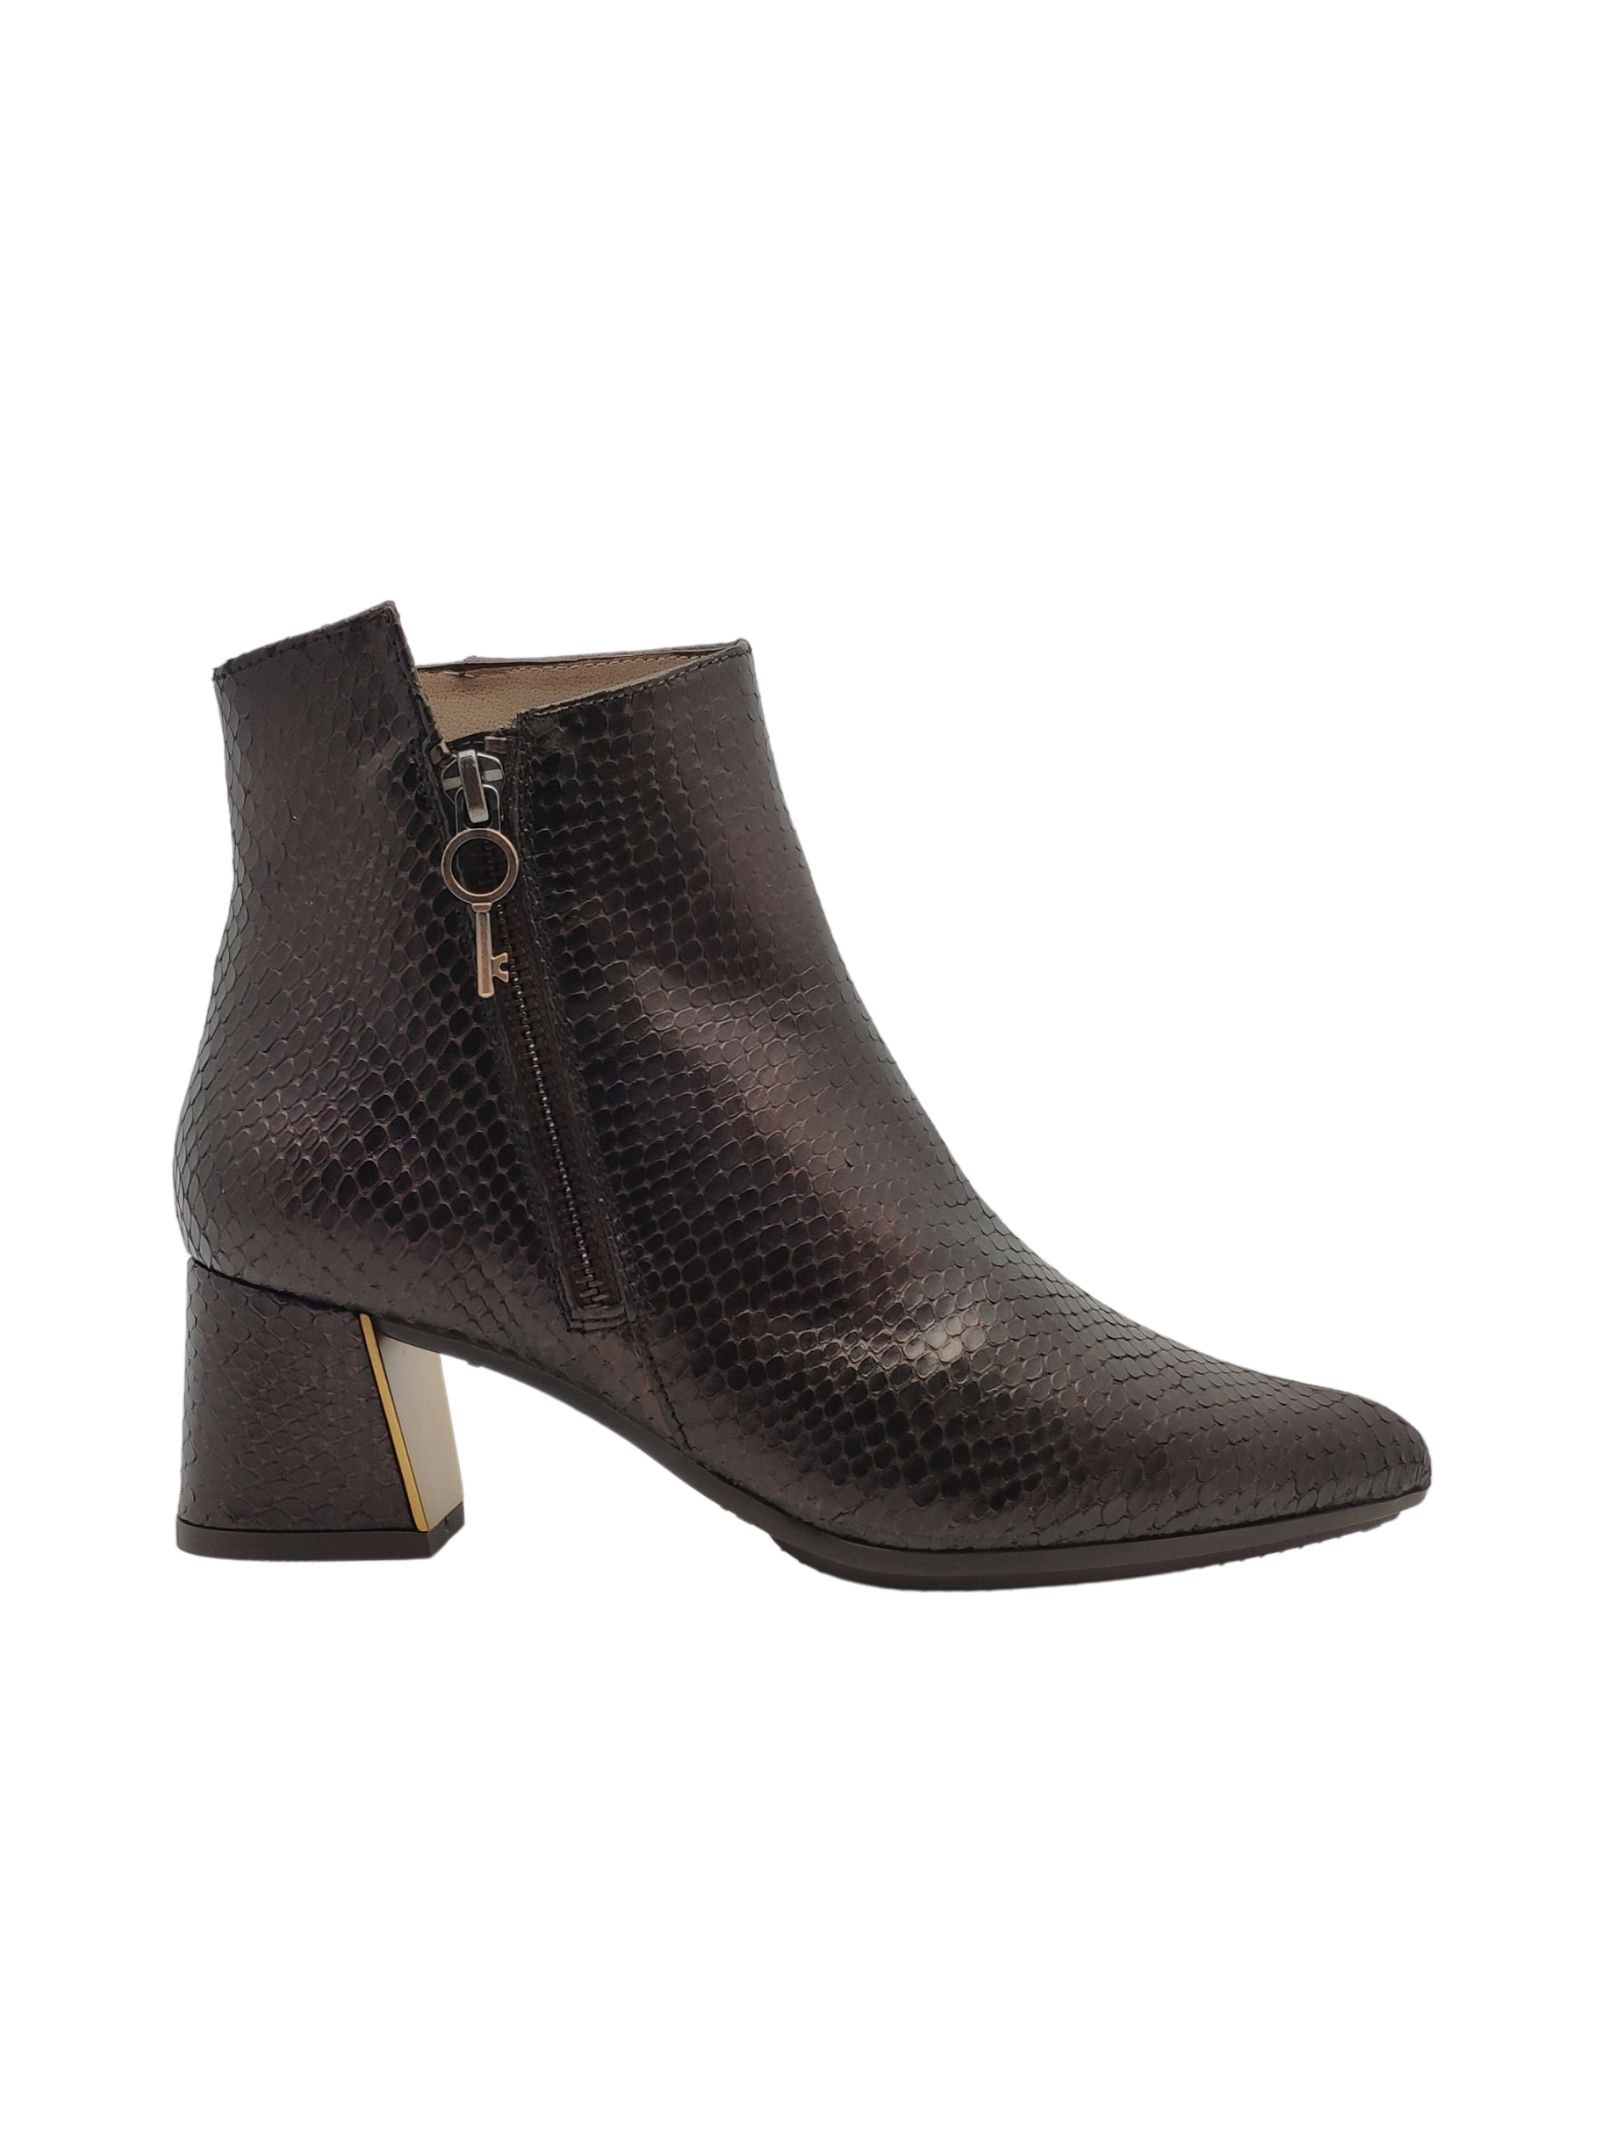 Women's Zip Ankle Boots Hispanitas | Ankle Boots | 00728MORO